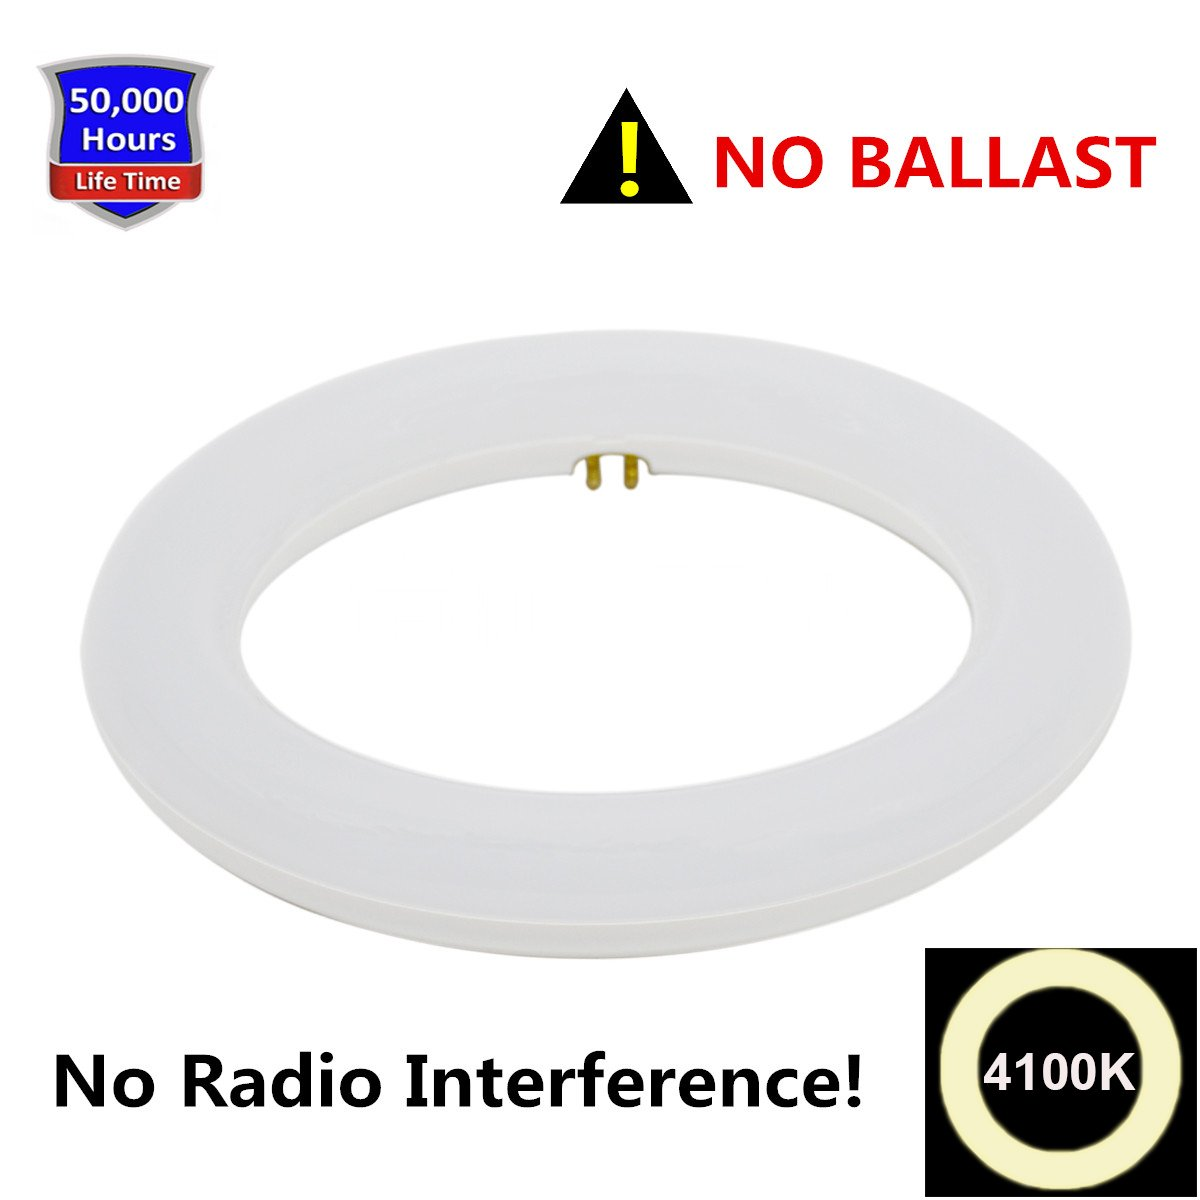 8 Inch Circline 10W T9 LED Light Bulb Cool White 4100K, Replacement for  Fluorescent FC8T9 Bulbs without Ballast - - Amazon.com